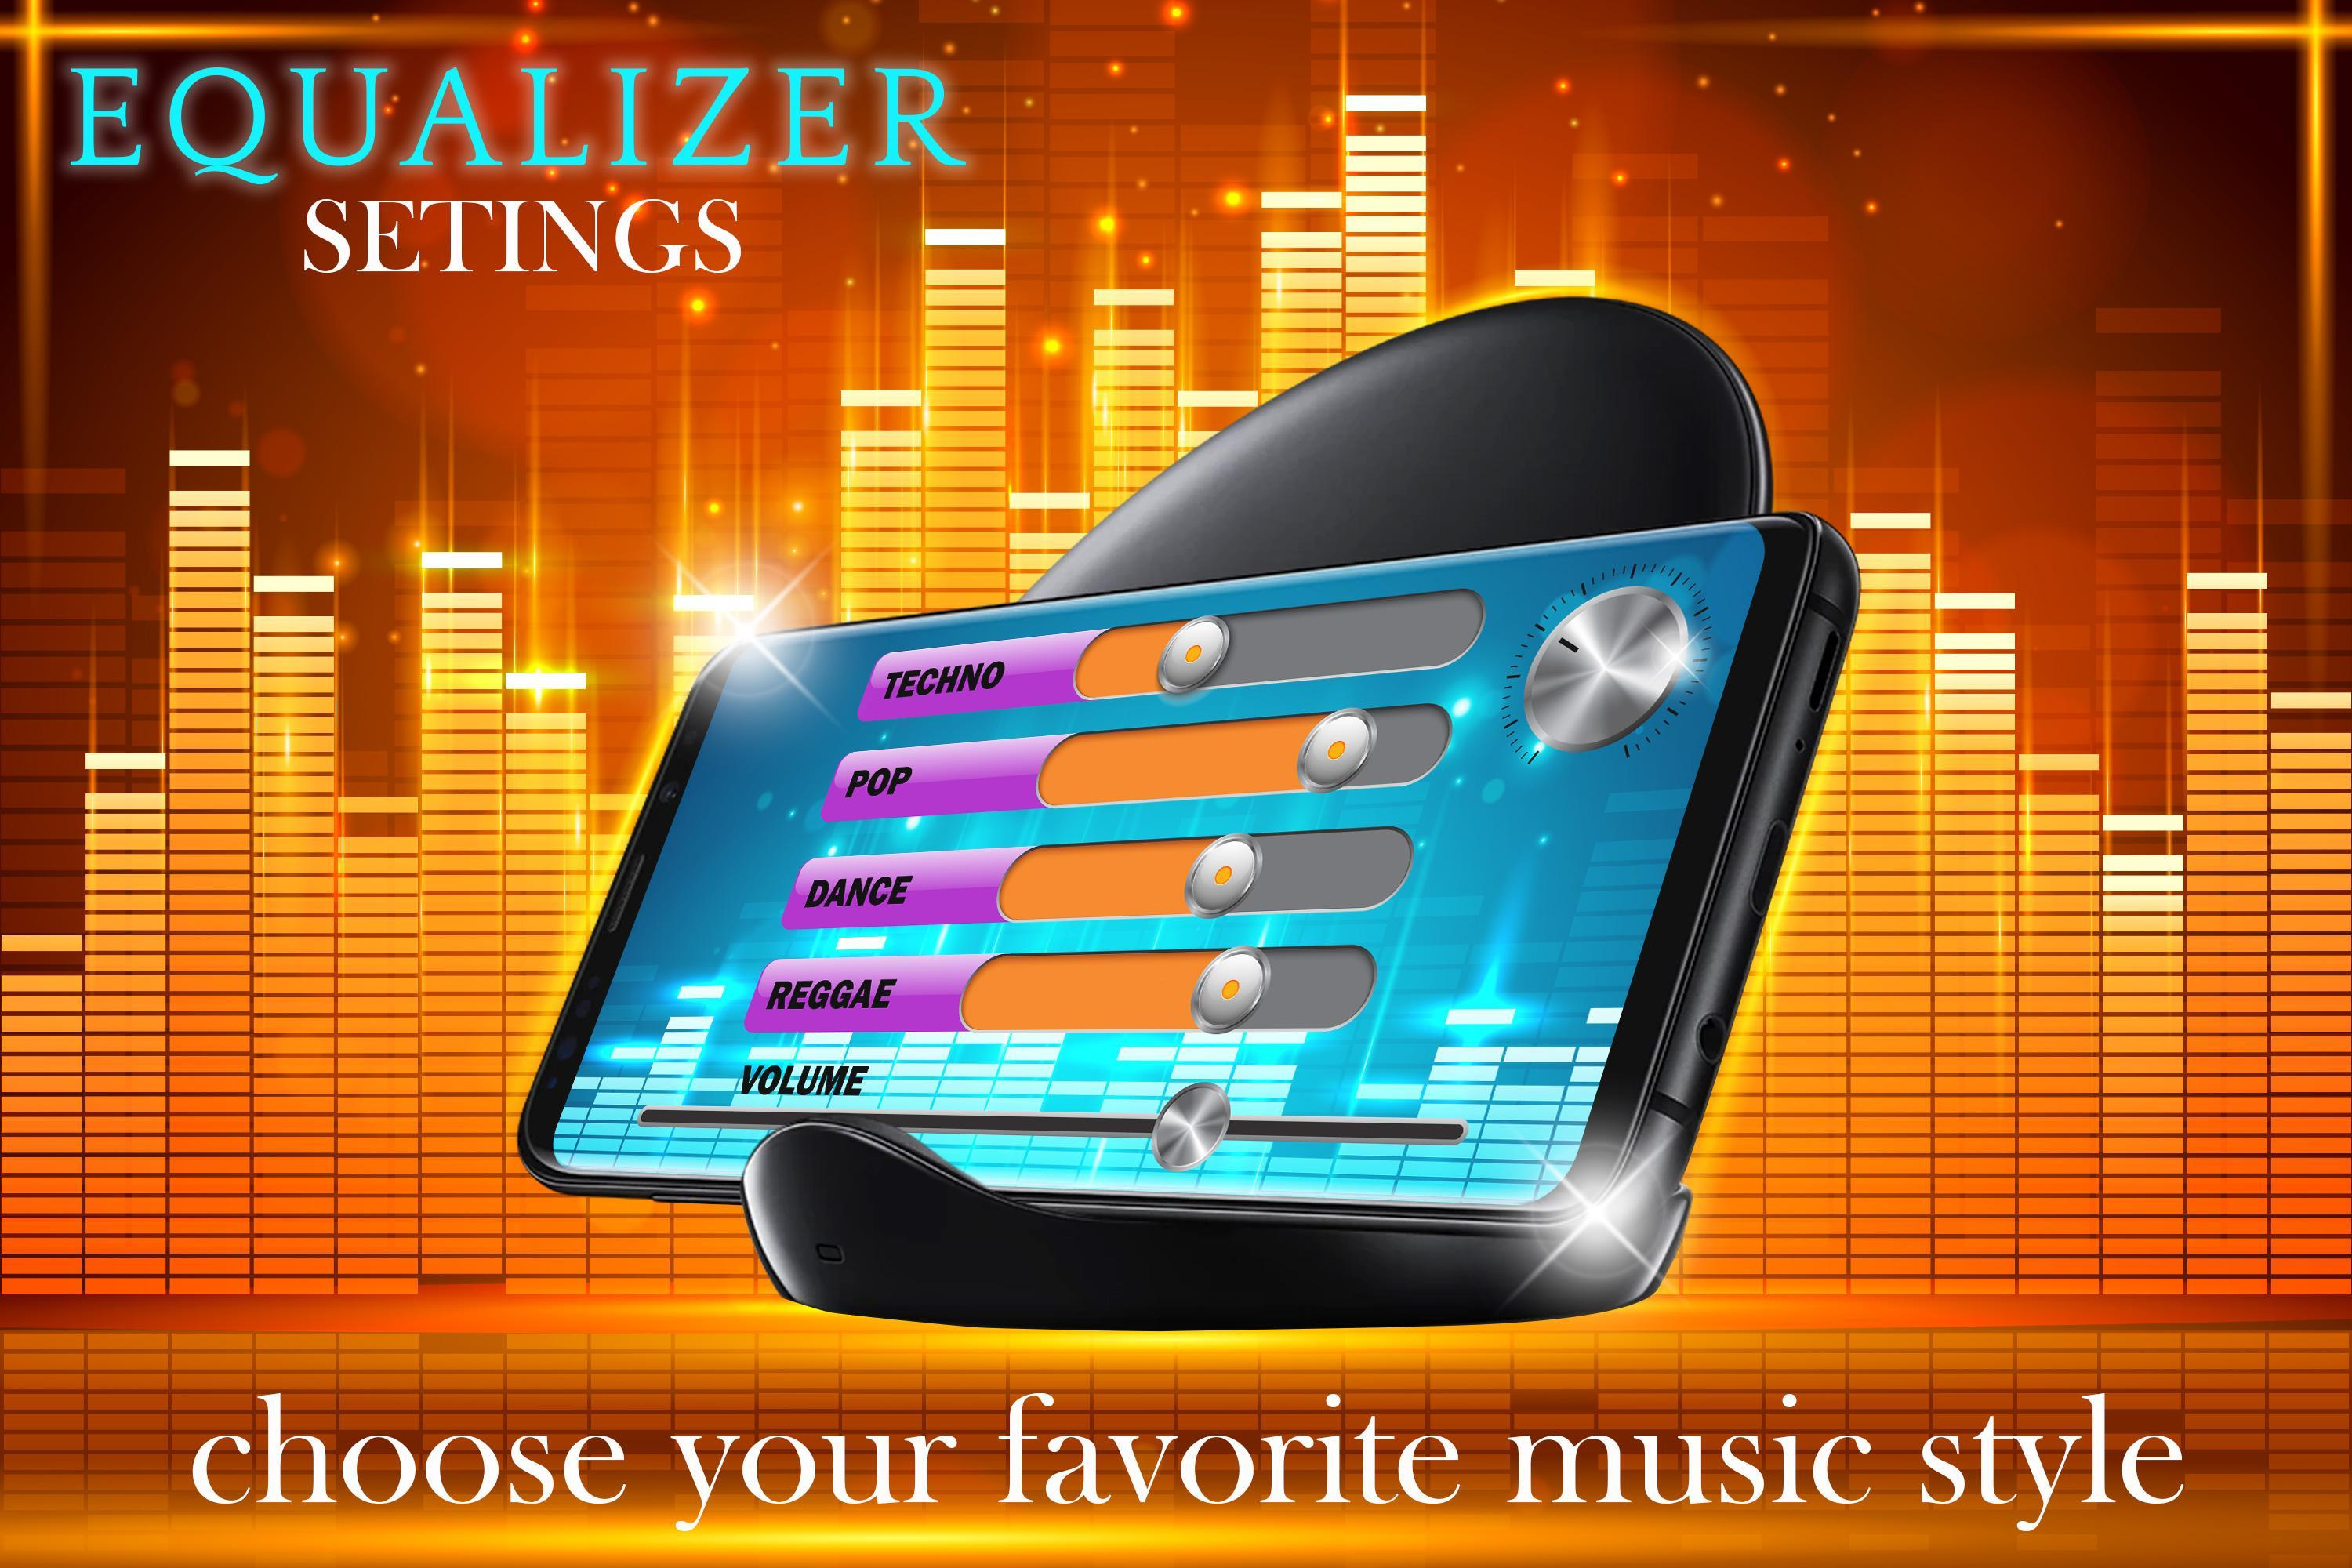 Auto Tune App - Voice Changer with Sound Effects for Android - APK